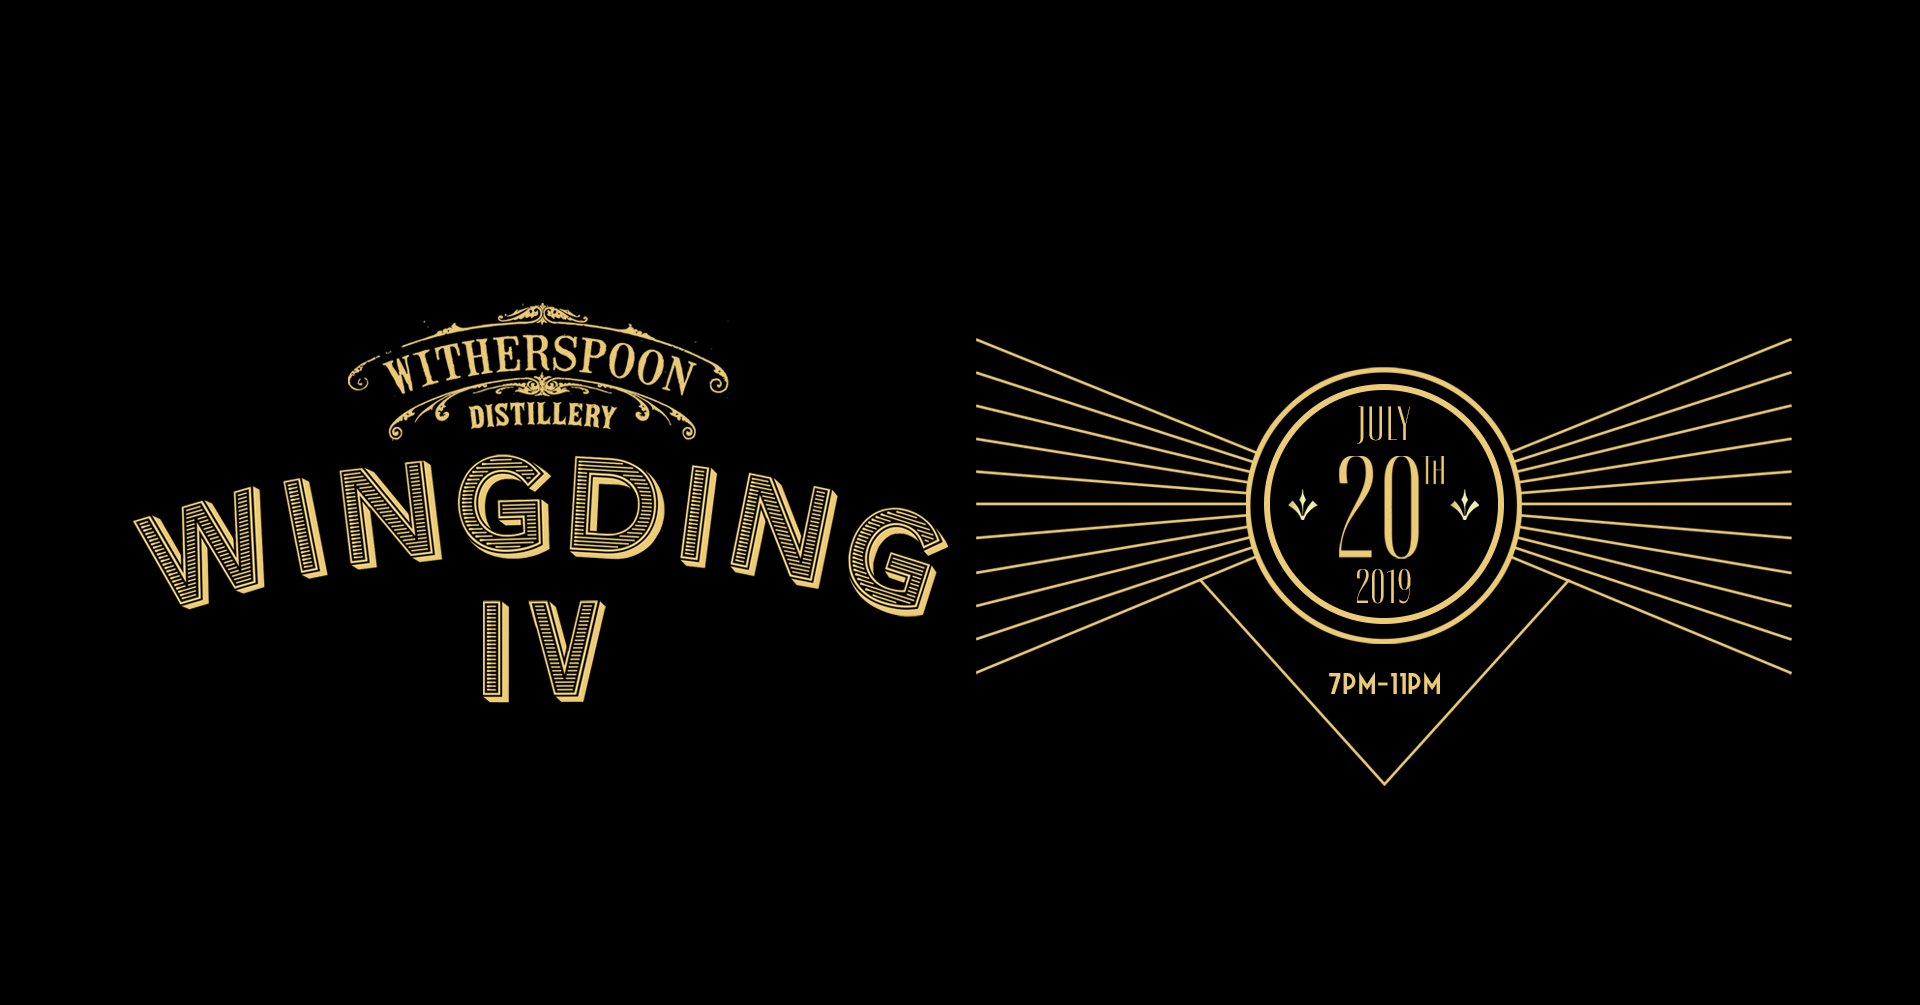 fbwing ding 2019 EVENT cover photo.jpg